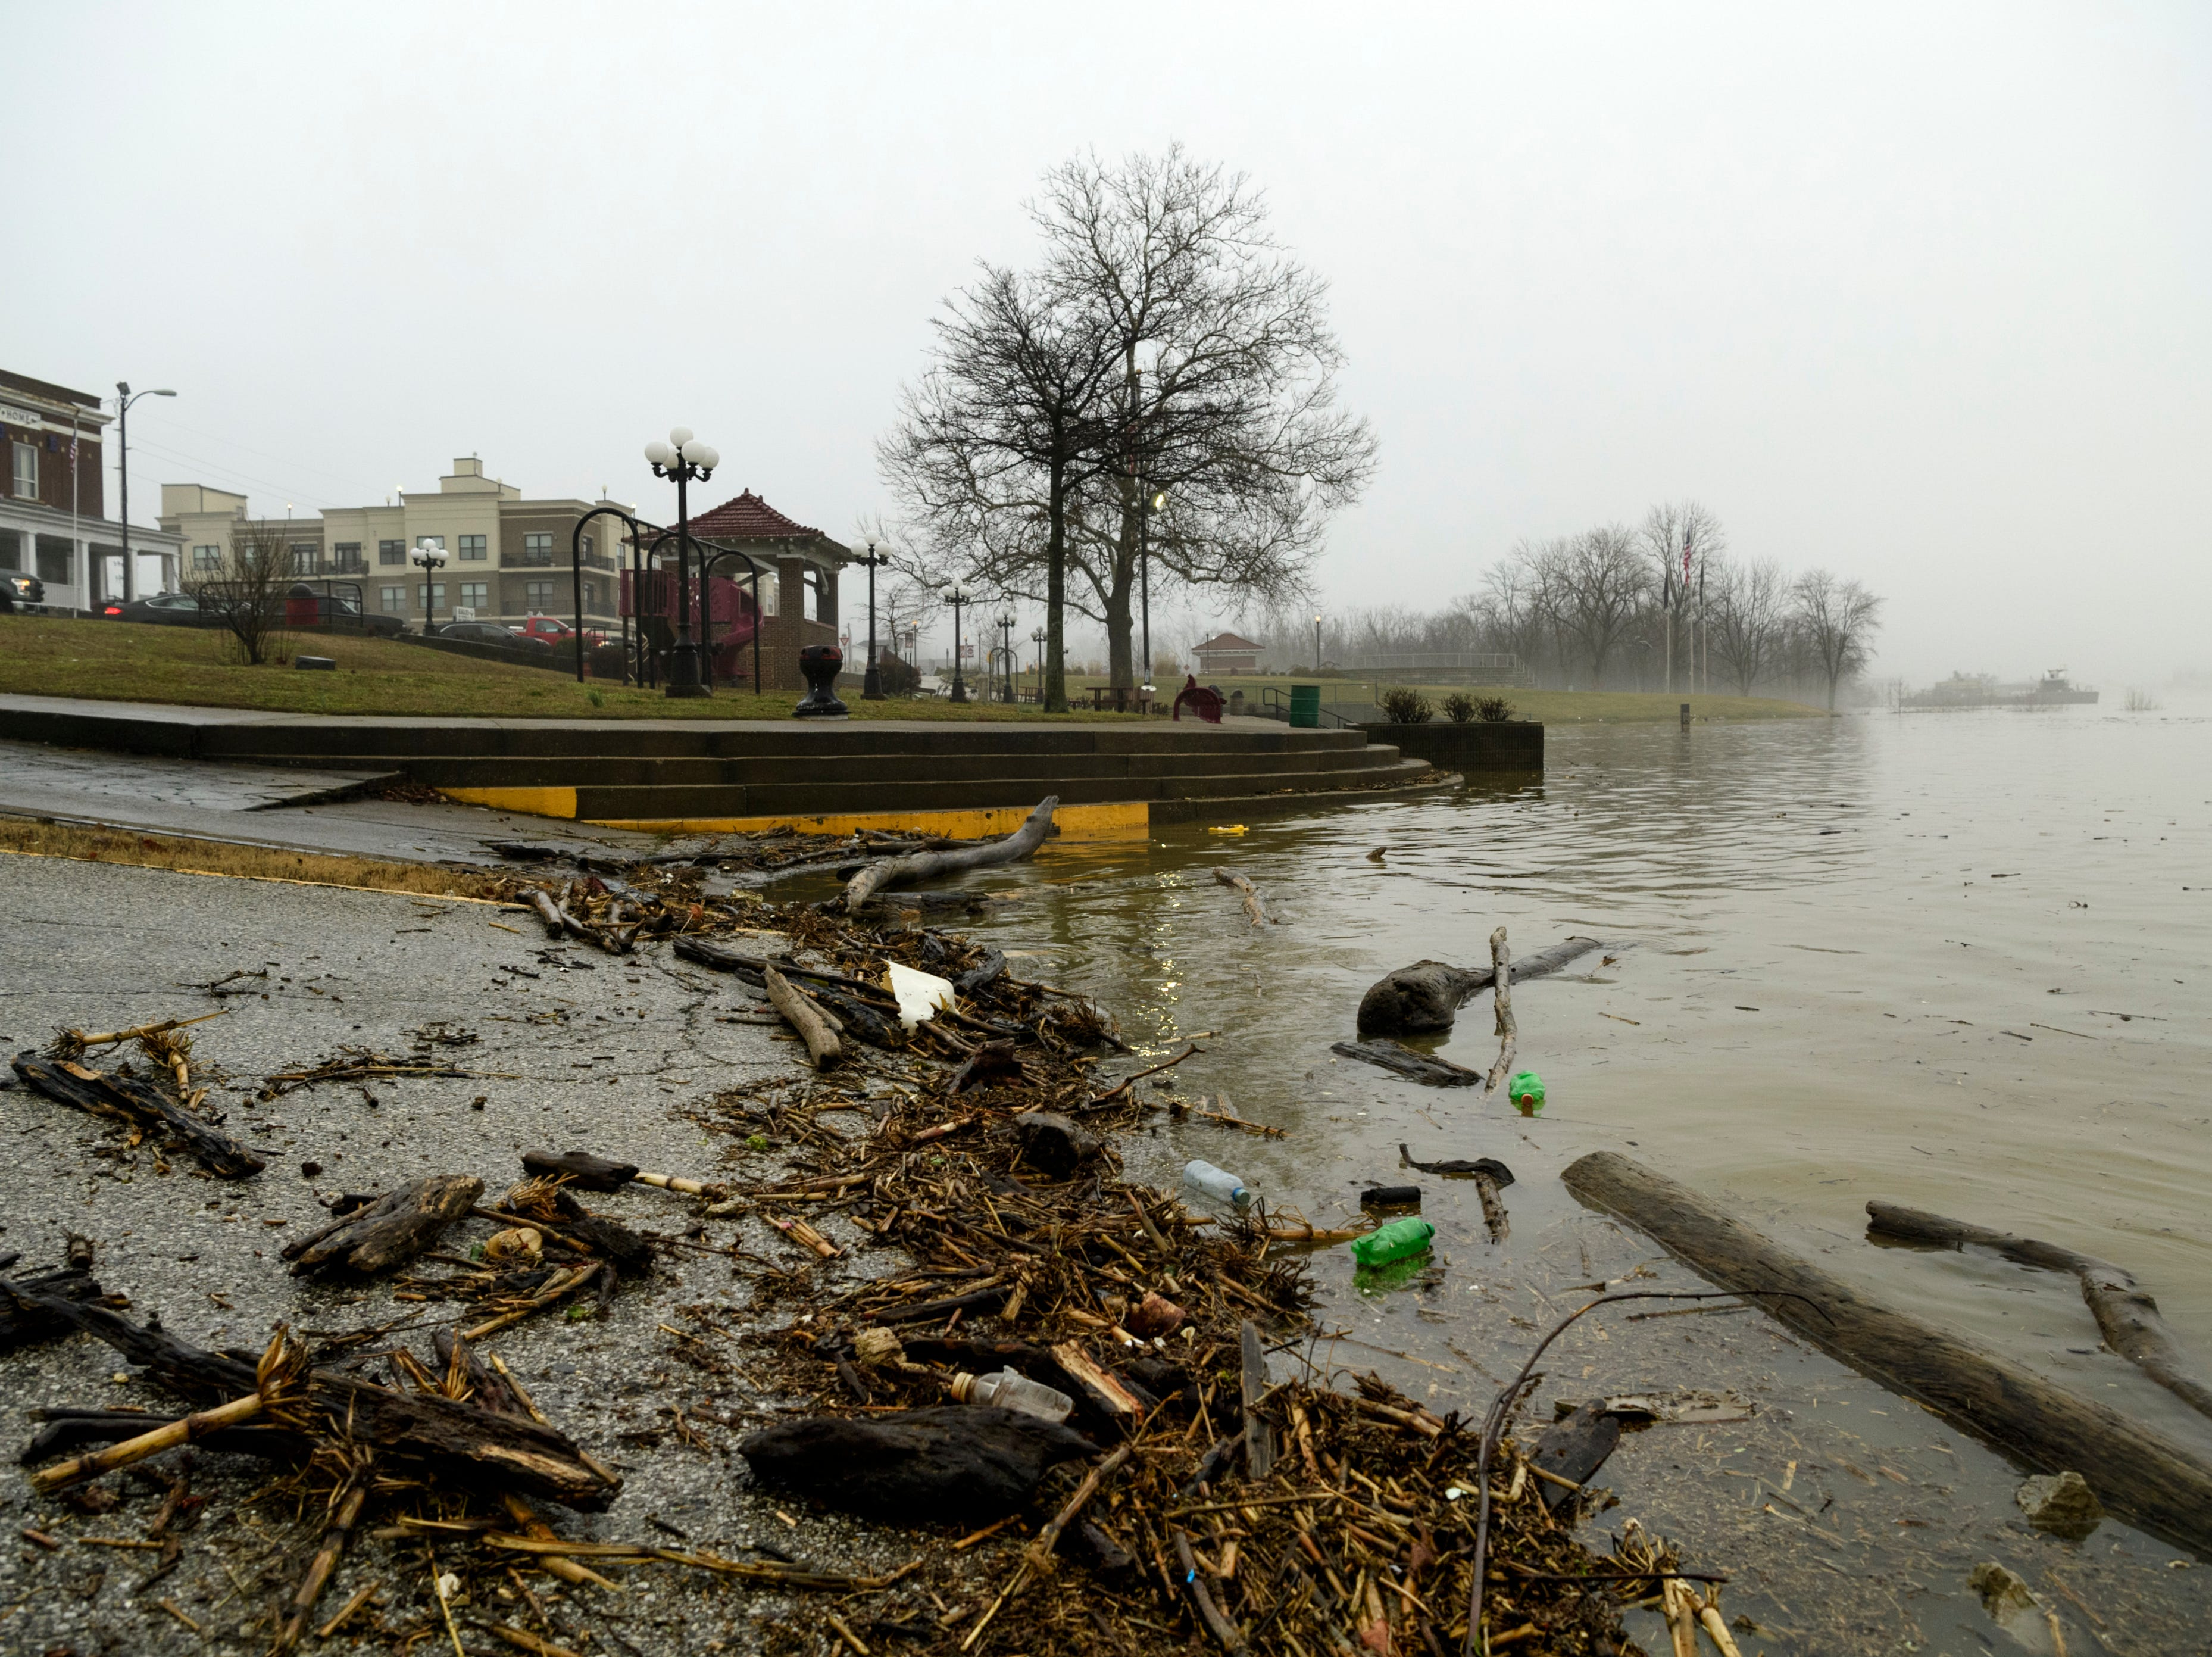 Driftwood litters the ground at Riverbend Park in downtown Mt. Vernon, Ind., Wednesday, Feb. 20, 2019. According to the National Weather Service, the flood stage was measured at 46 feet in Mount Vernon at 6 a.m. Wednesday.